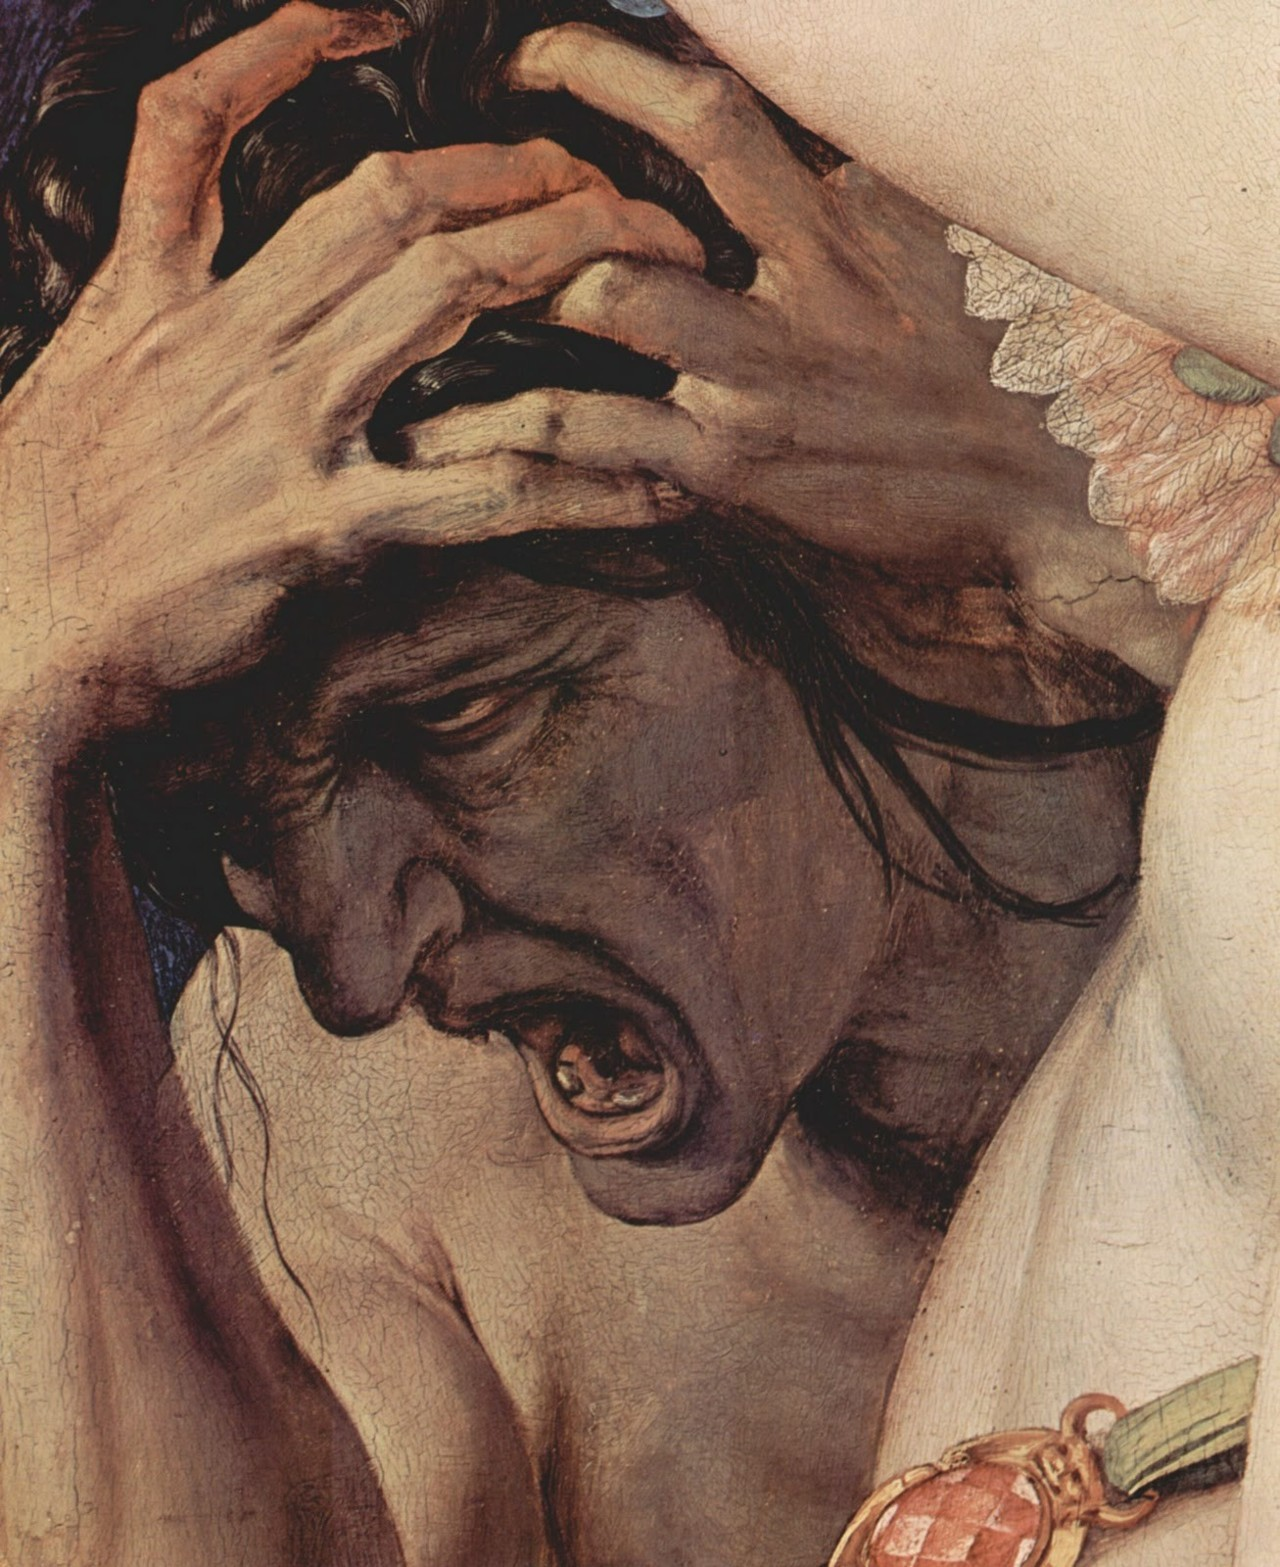 Bronzino An Allegory with Venus and Cupid (detail) 1540-50